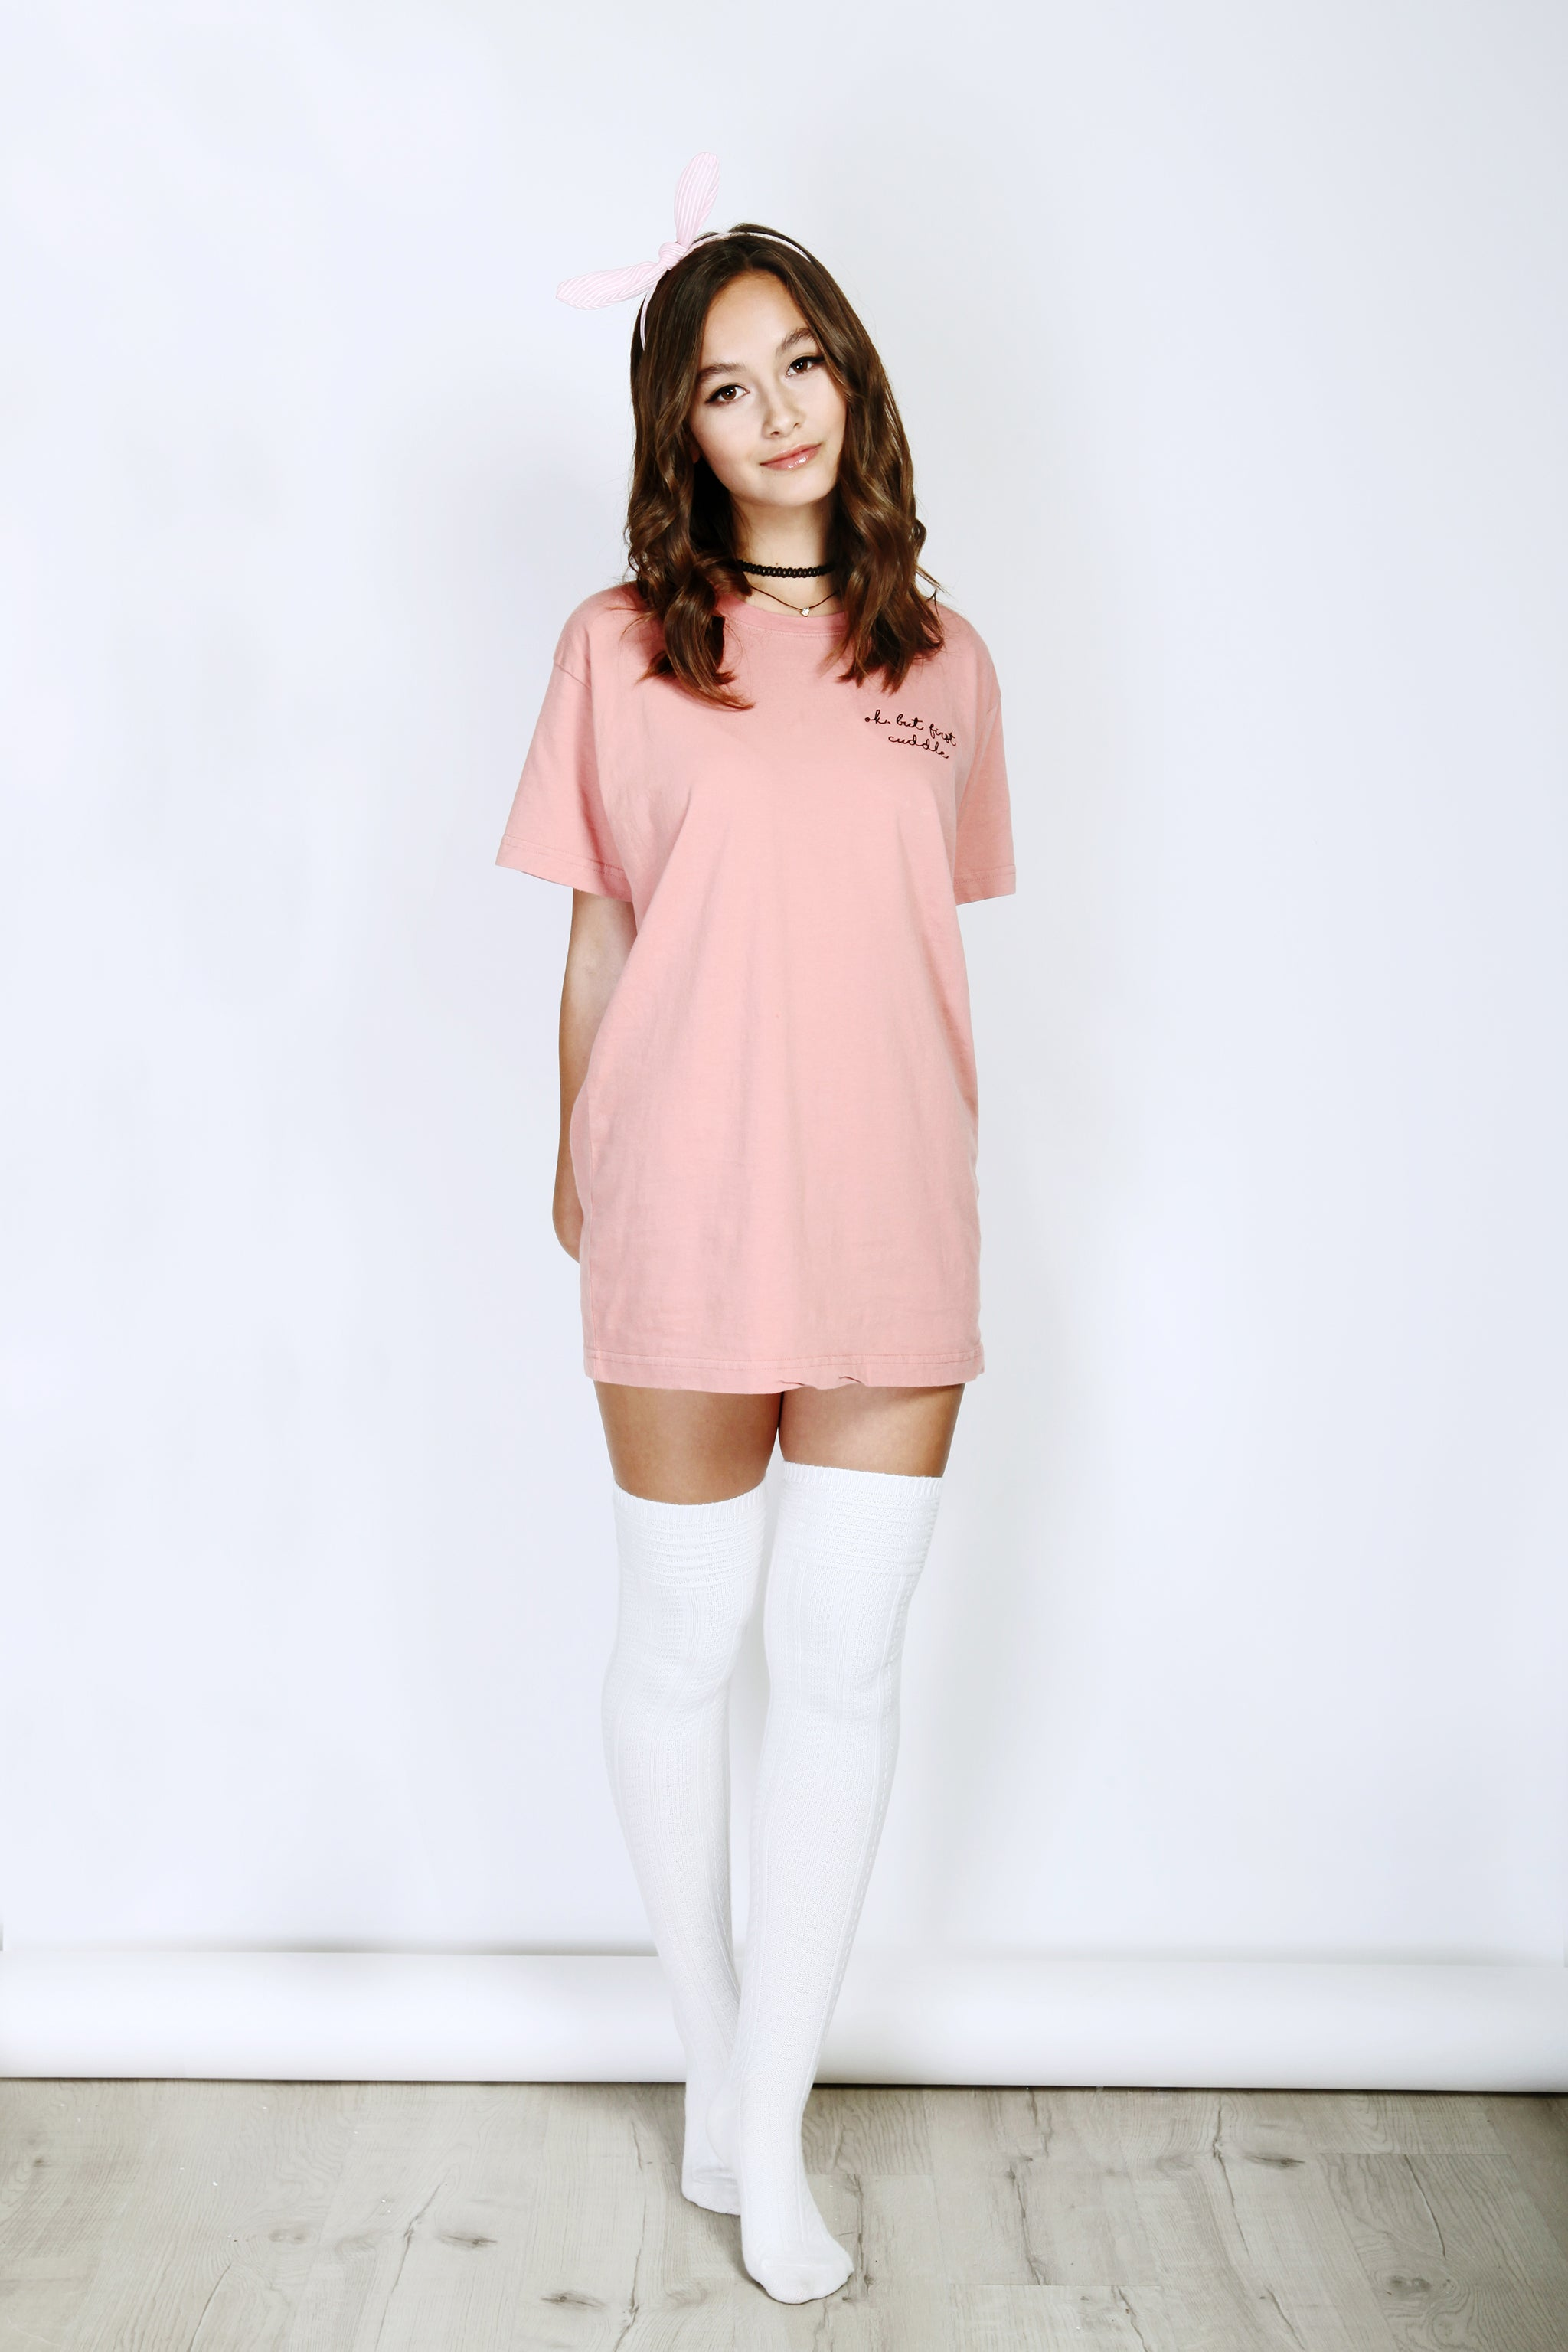 Cream Coral Super Comfy Oversized Cotton T-shirt Crew Whole Body Outfit View